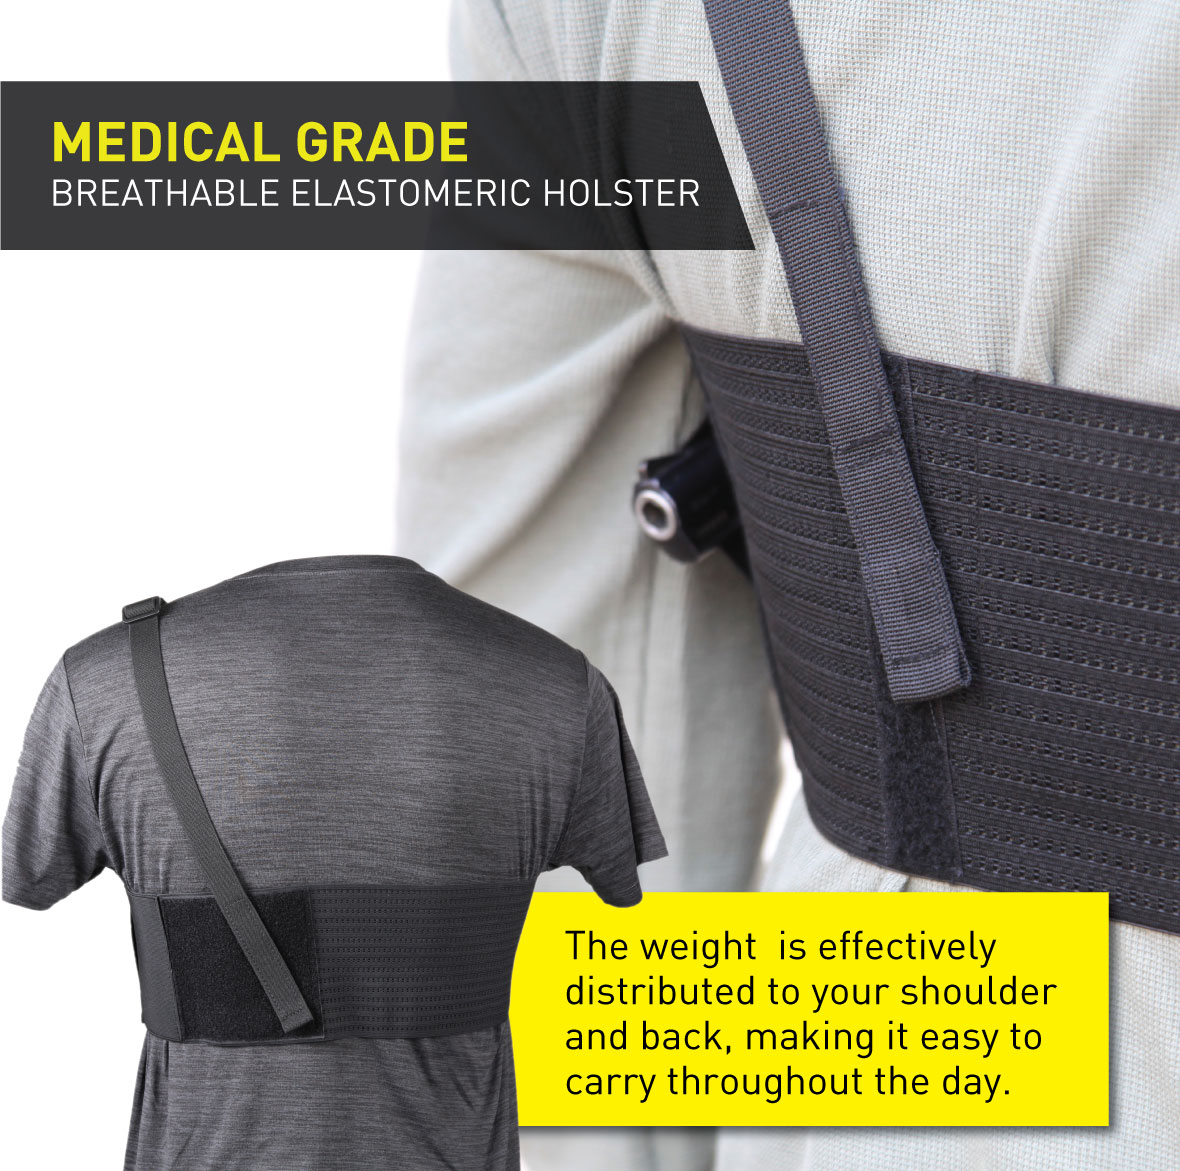 Stinger Premium Ultra Breathable Chest Band Holster for Concealed Carry, IWB OWB Gun Holster, Fabric Comfortable Waistband Handgun Holster, Ammo Bandolier for Extra Round of Revolver Bullet